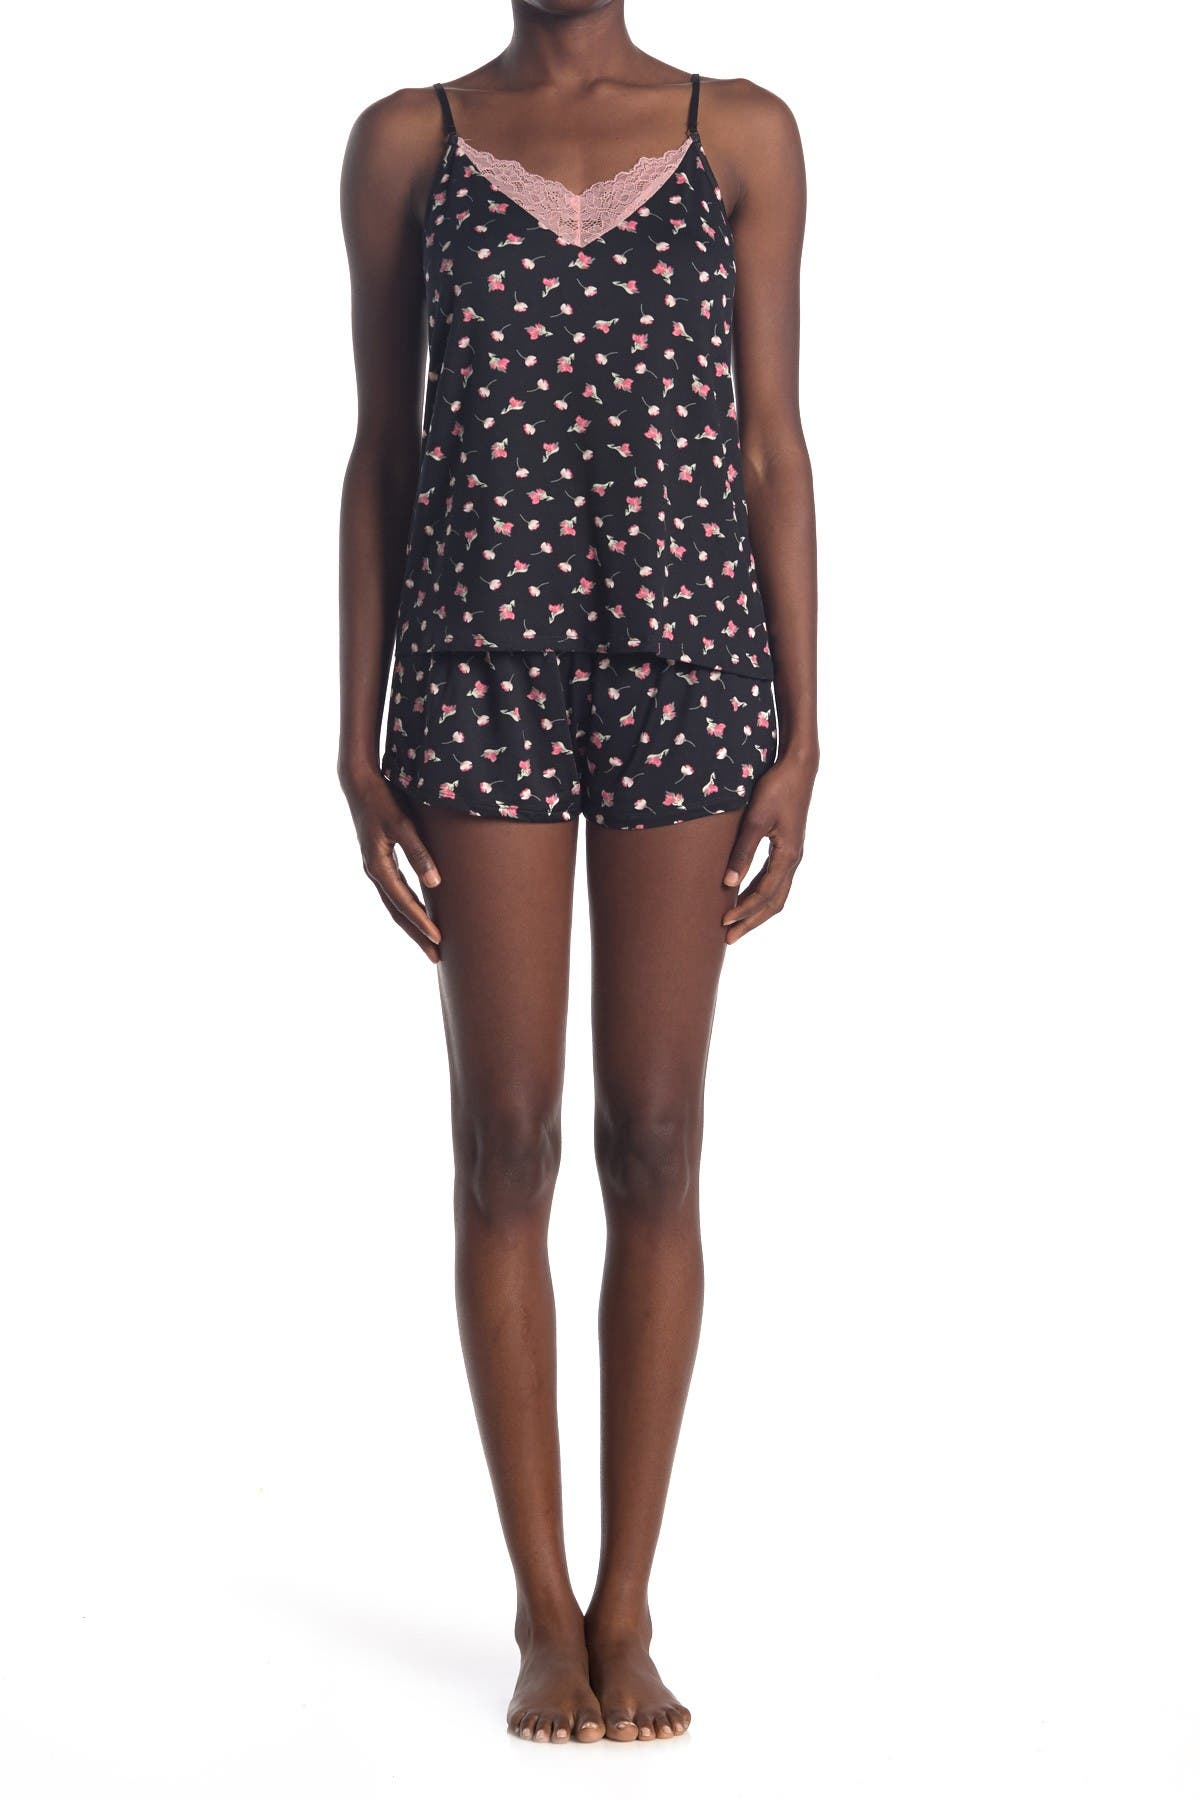 Image of Flora by Flora Nikrooz Dalphene Floral Robe, Camisole & Shorts Jersey 3-Piece Pajama Set